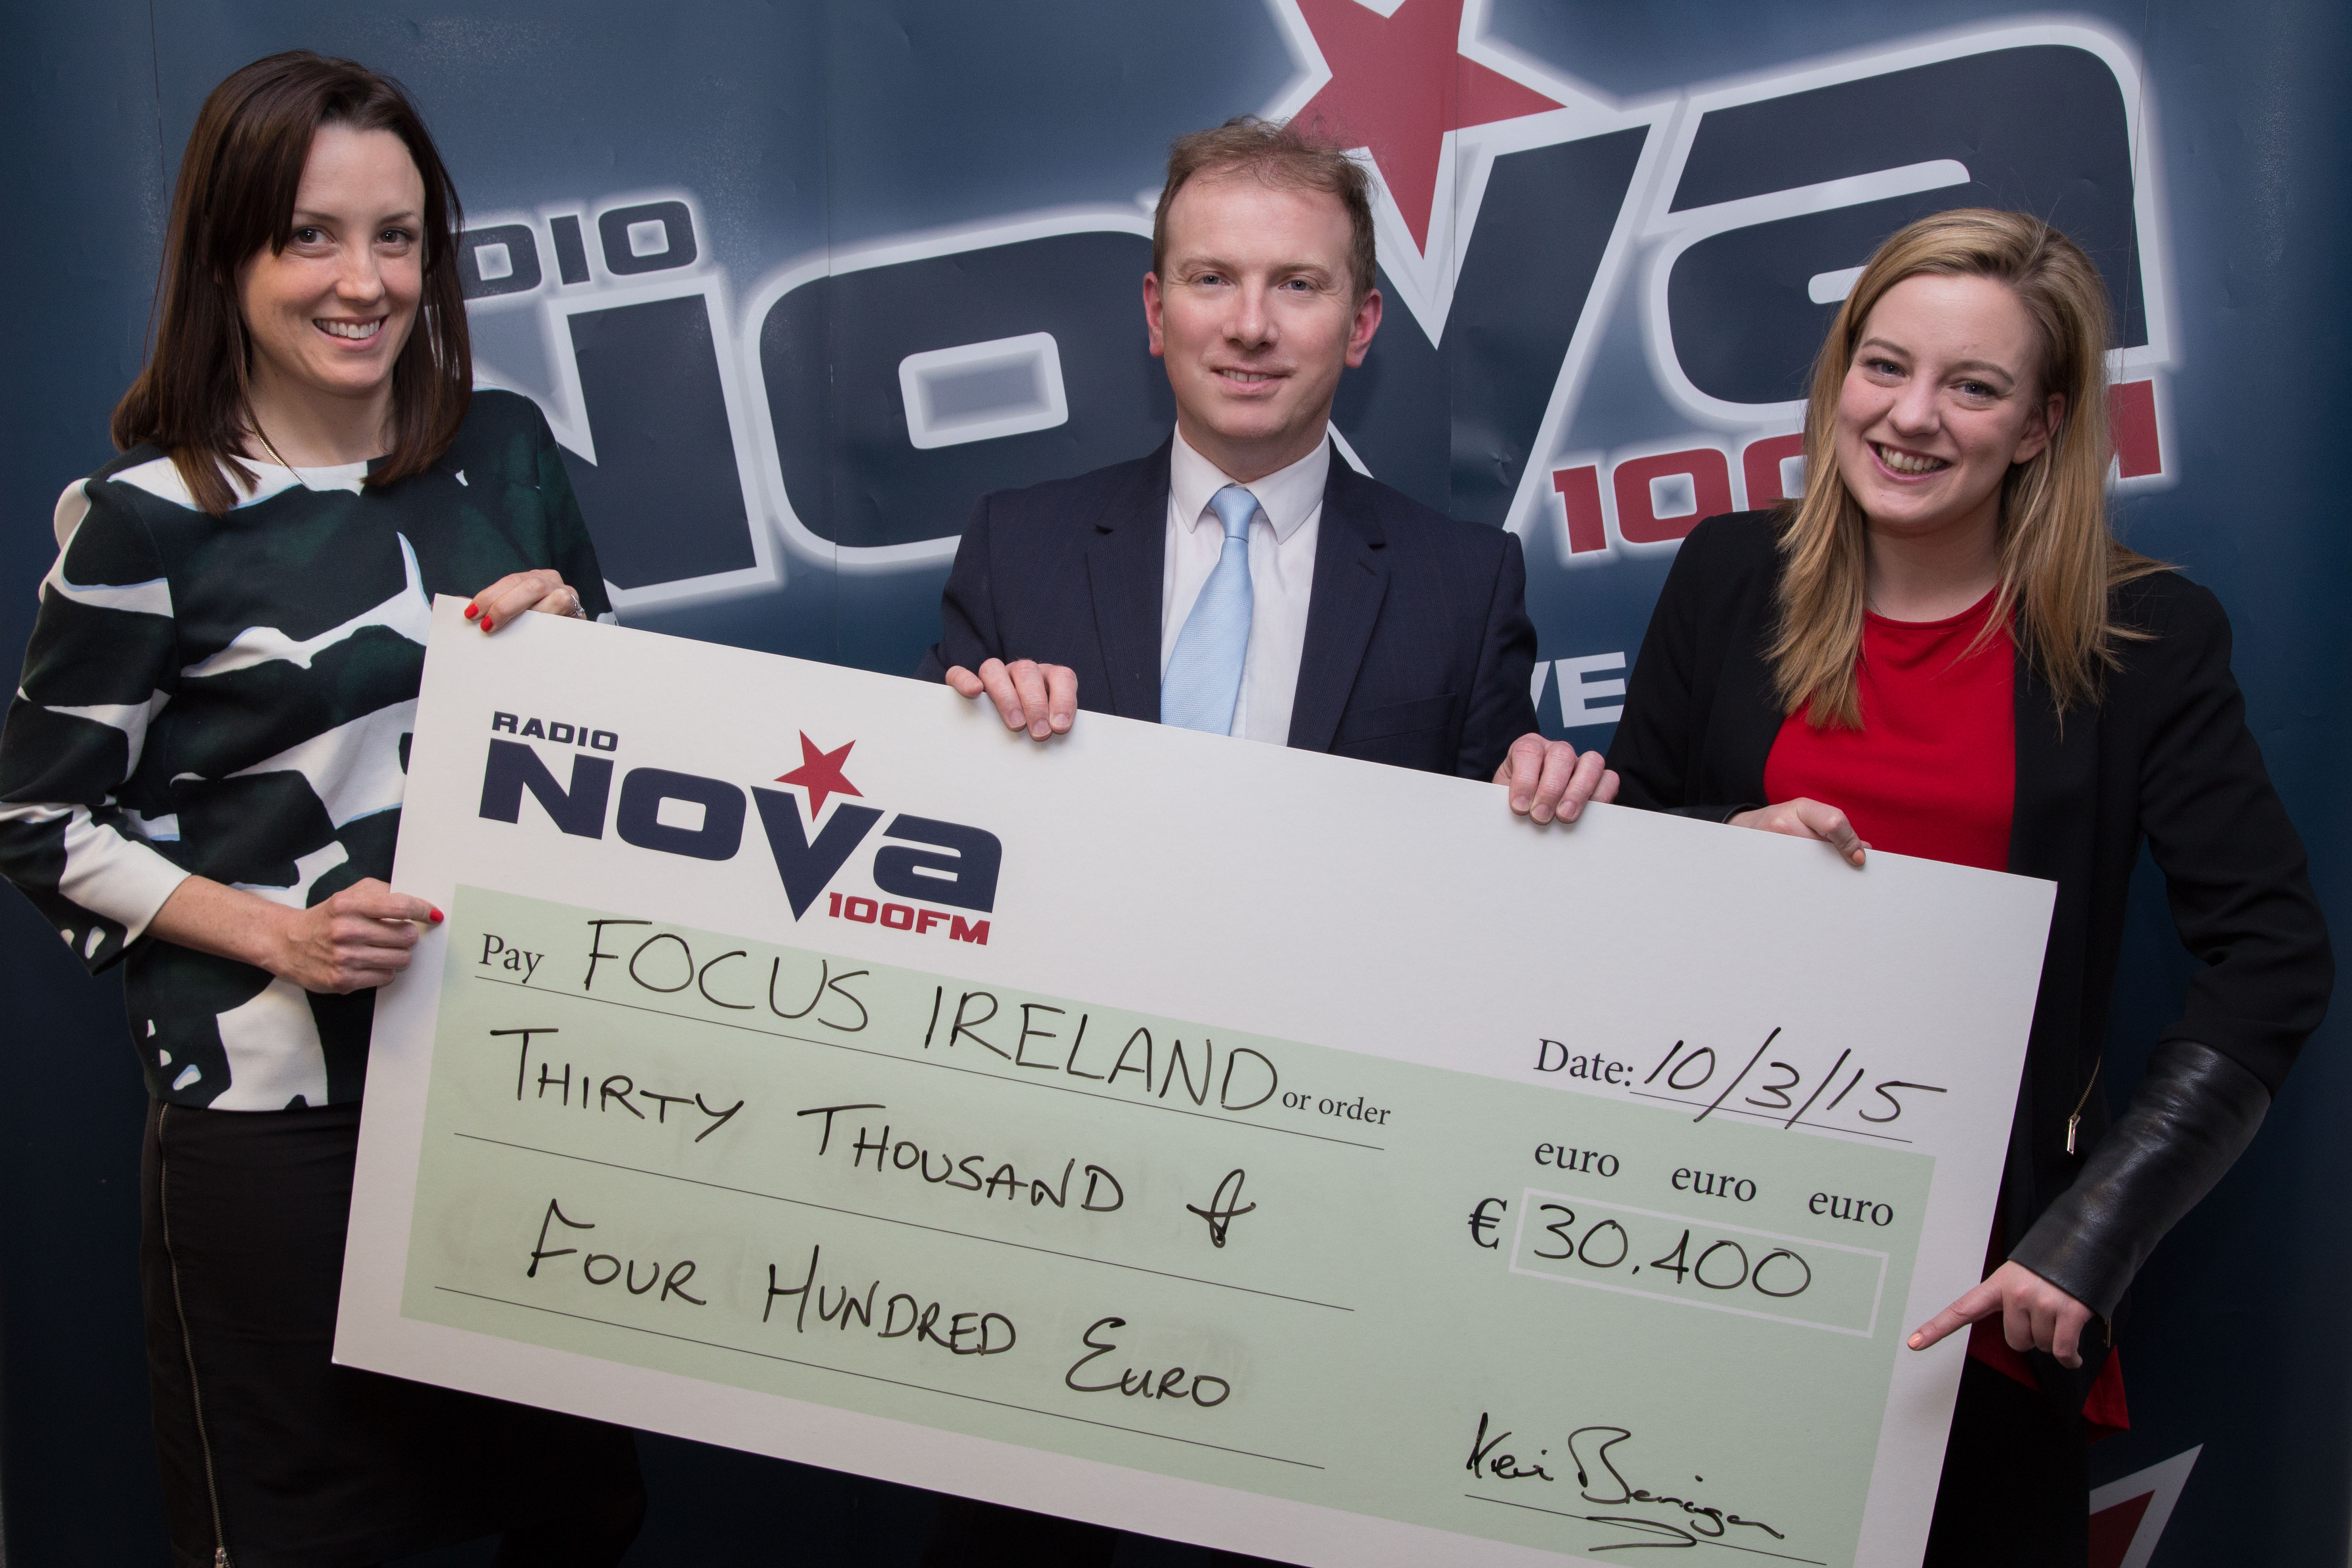 Radio NOVA & Focus Ireland